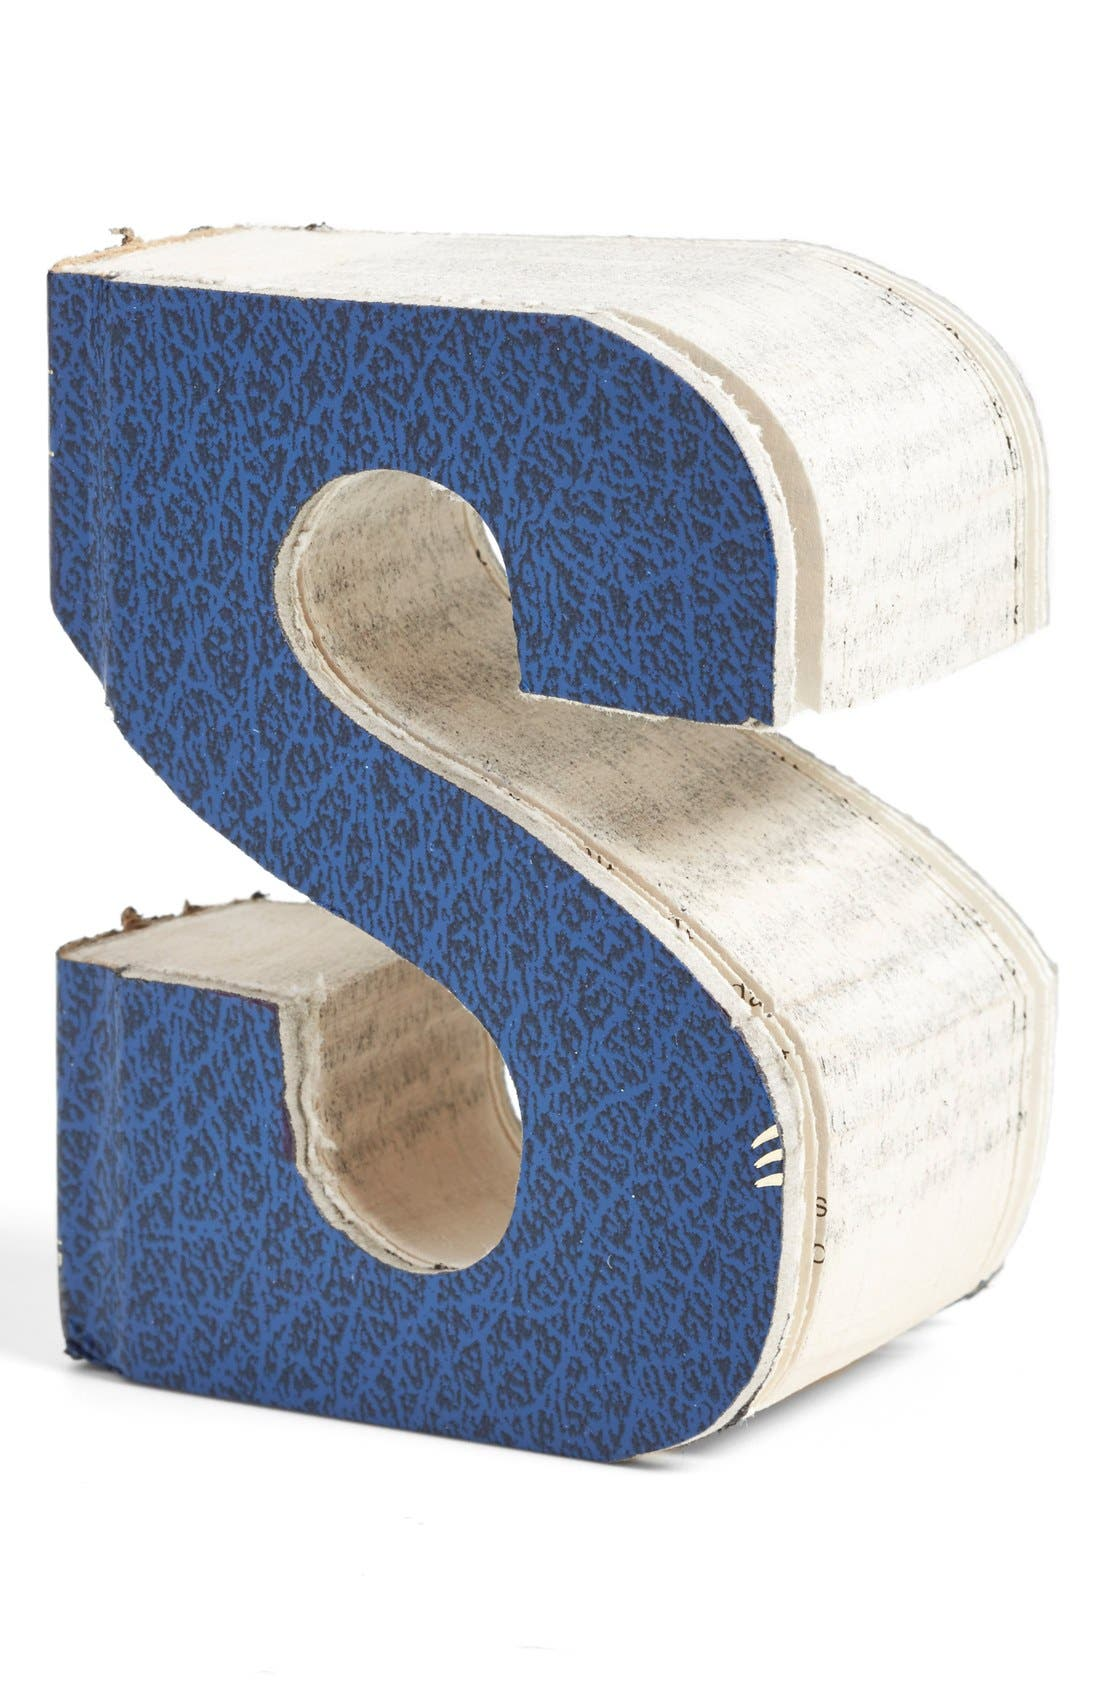 Alternate Image 1 Selected - Second Nature by Hand 'One of a Kind Letter' Hand Carved Recycled Book Shelf Art (Small)